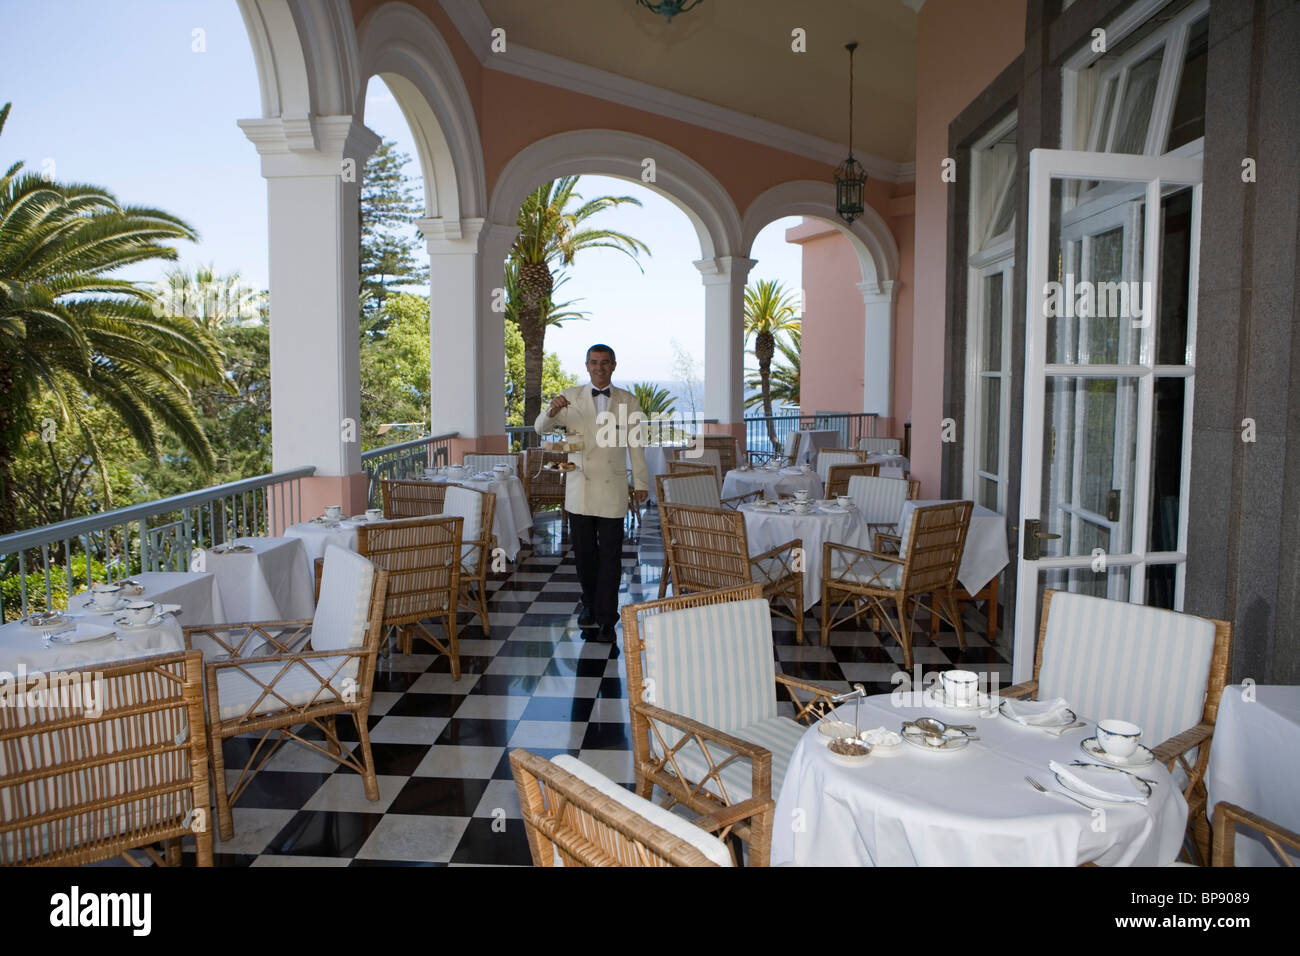 Waiter serves Afternoon Tea on the Terrace at Reid's Palace Hotel, Funchal, Madeira, Portugal - Stock Image